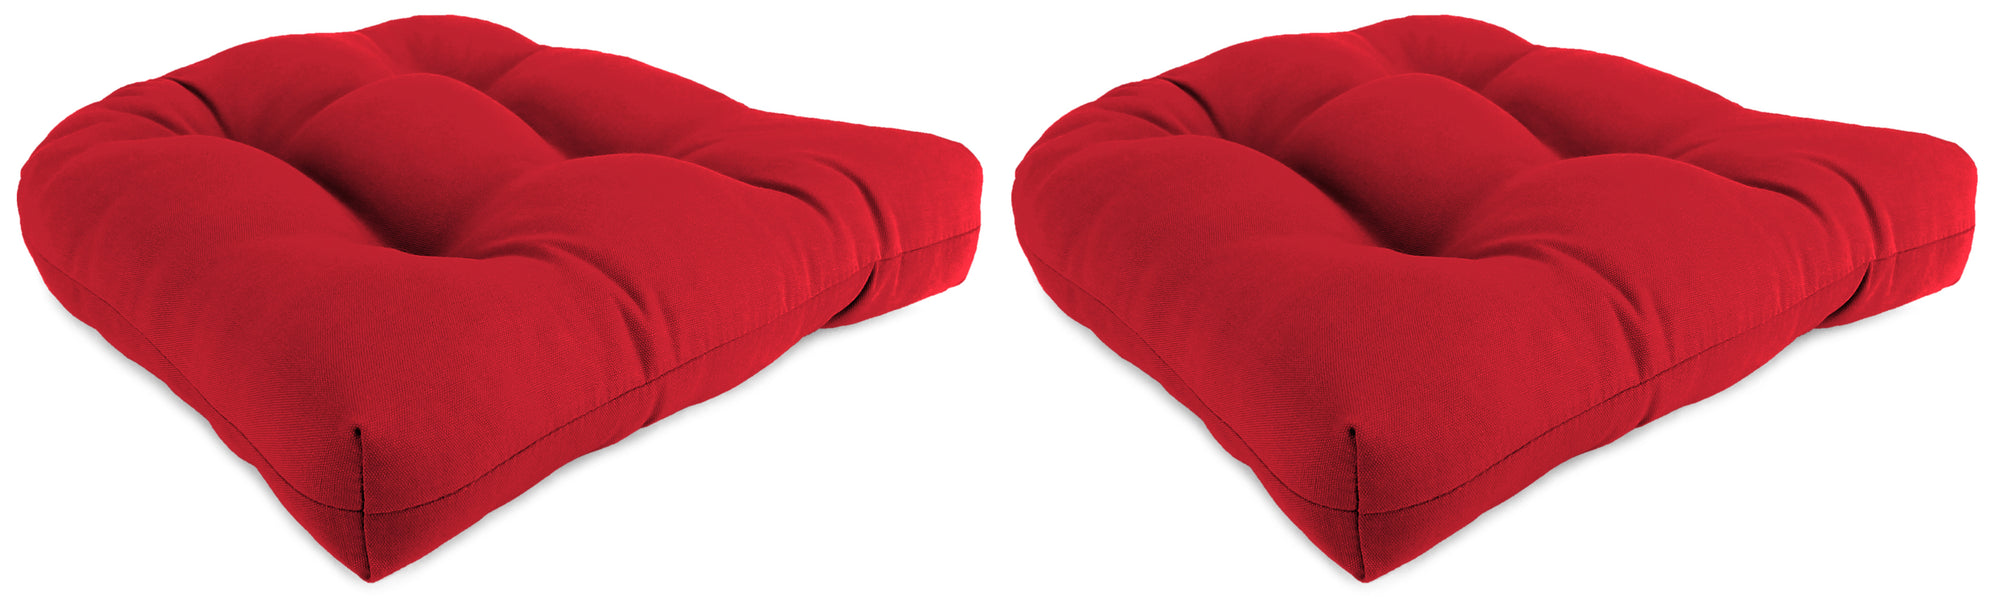 "Set of 2 Outdoor 18"" Wicker Chair Cushions-Sunbrella CANVAS JOCKEY ACR RED ACR GLEN RAVEN"